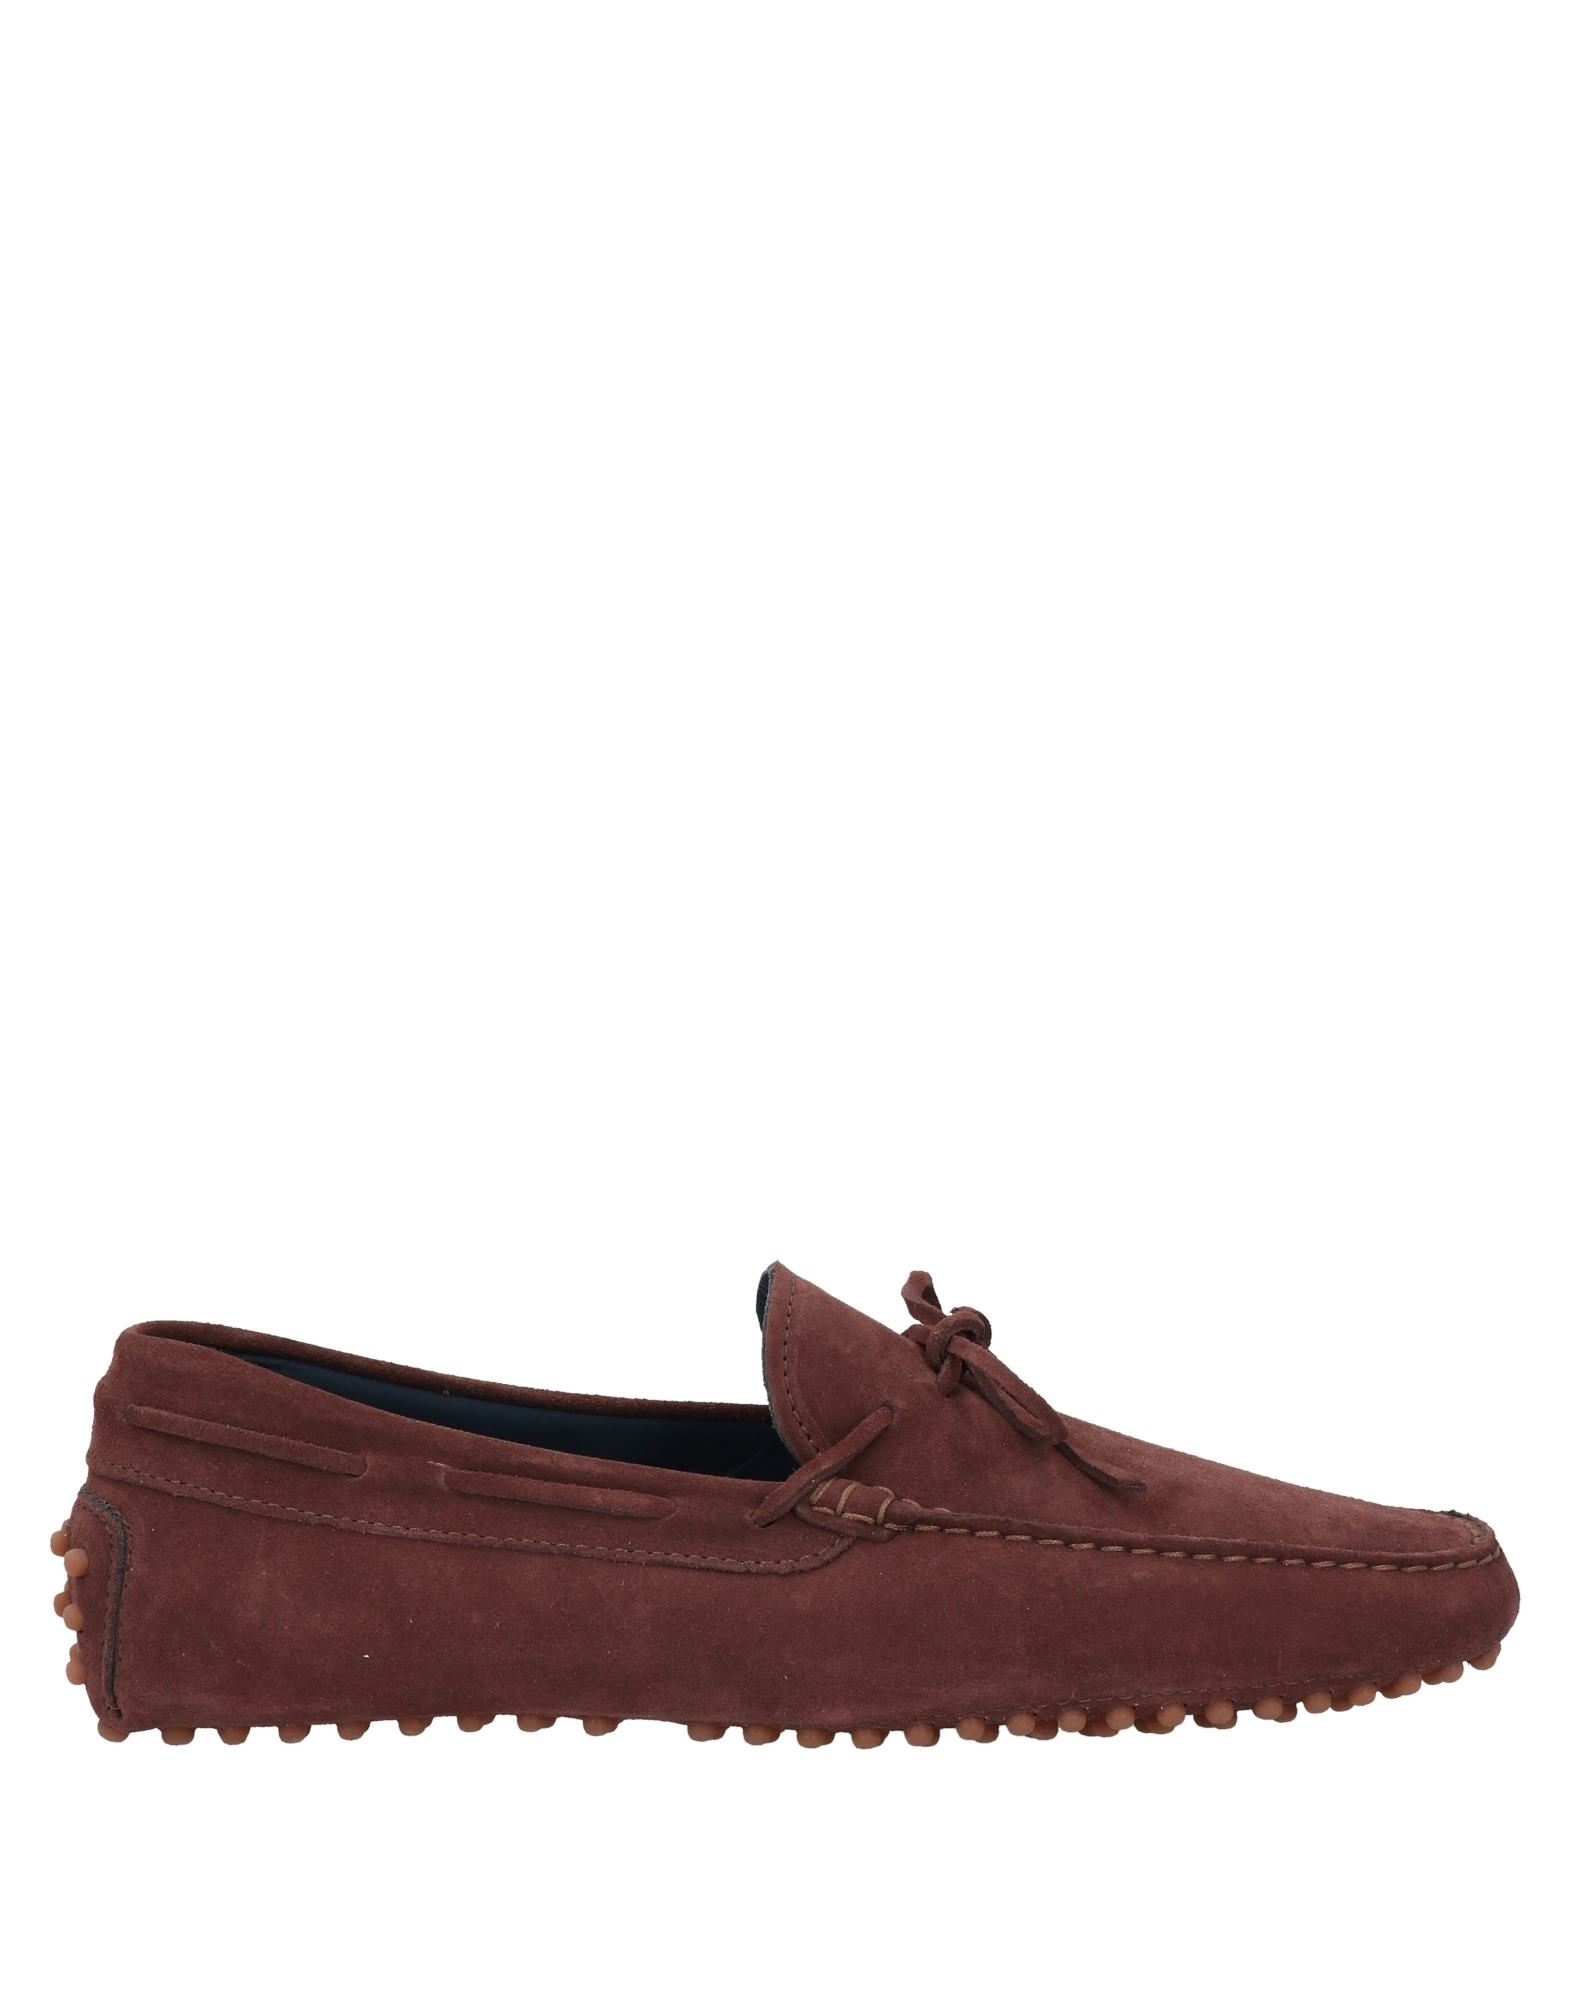 Alexander Trend Loafers In Cocoa